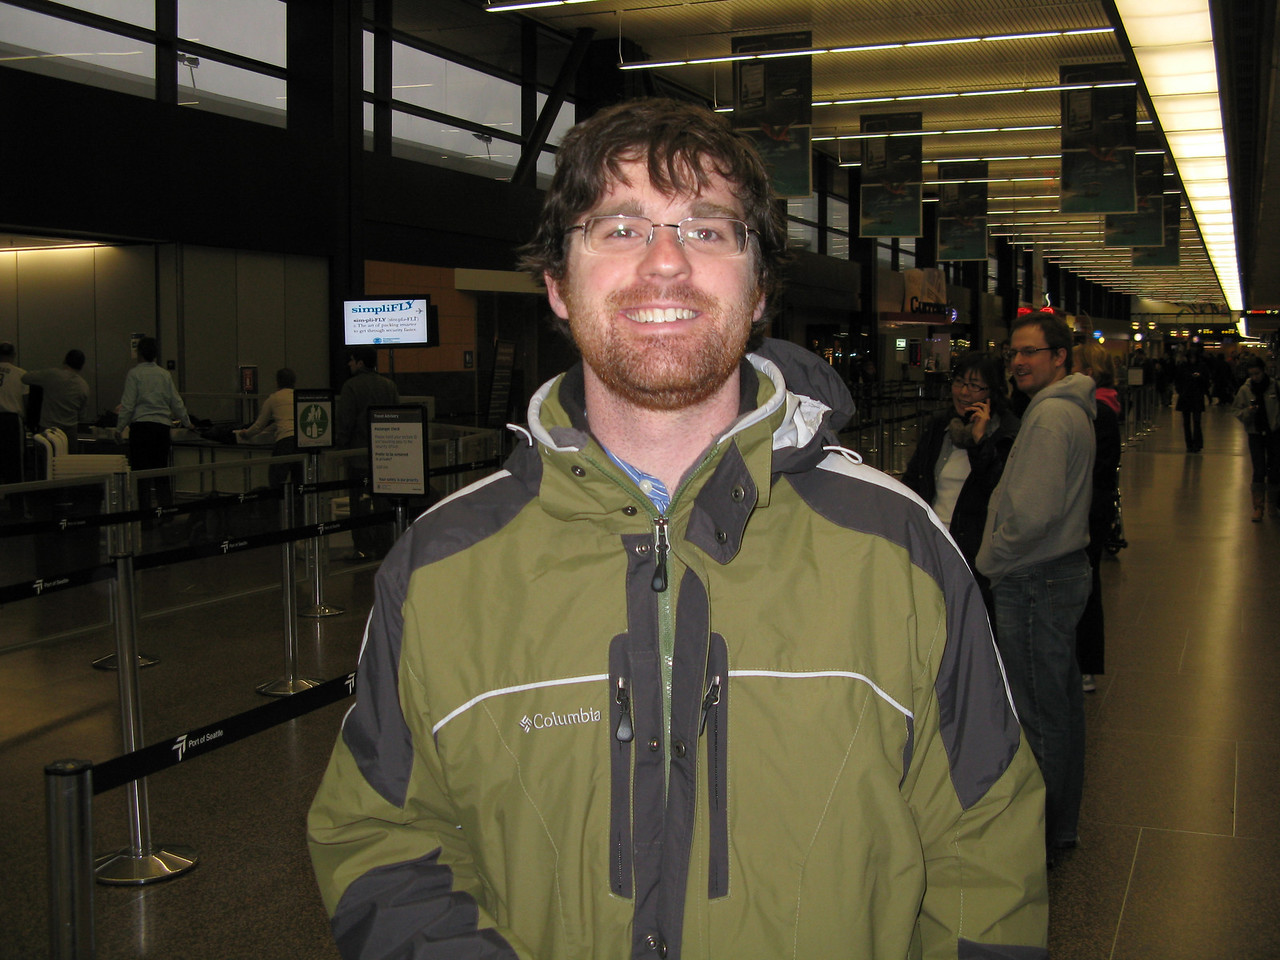 Robert in the airport ready to fly home on Sunday, January 11, 2009.